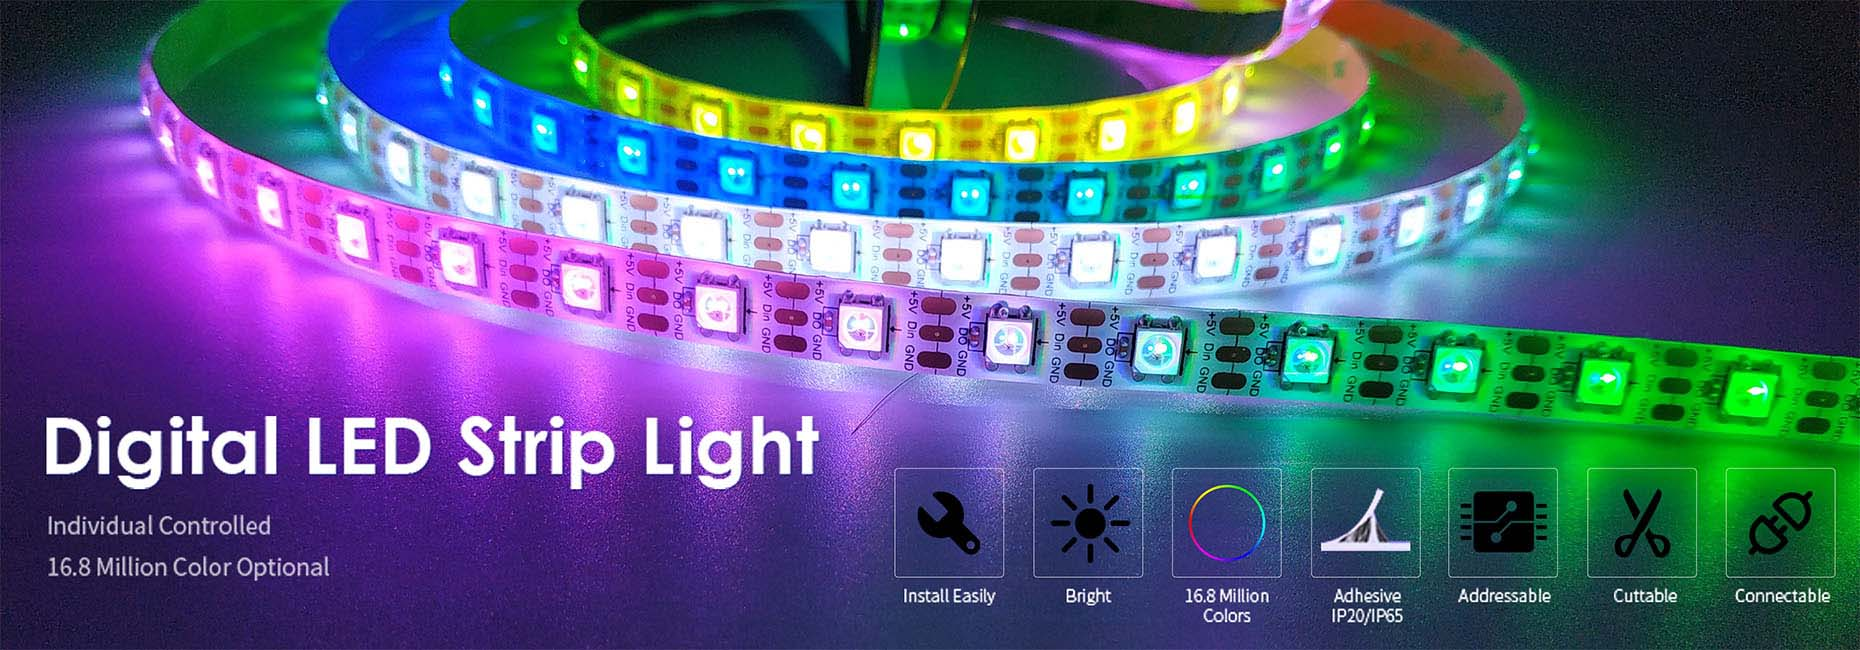 Digital LED Strip Light